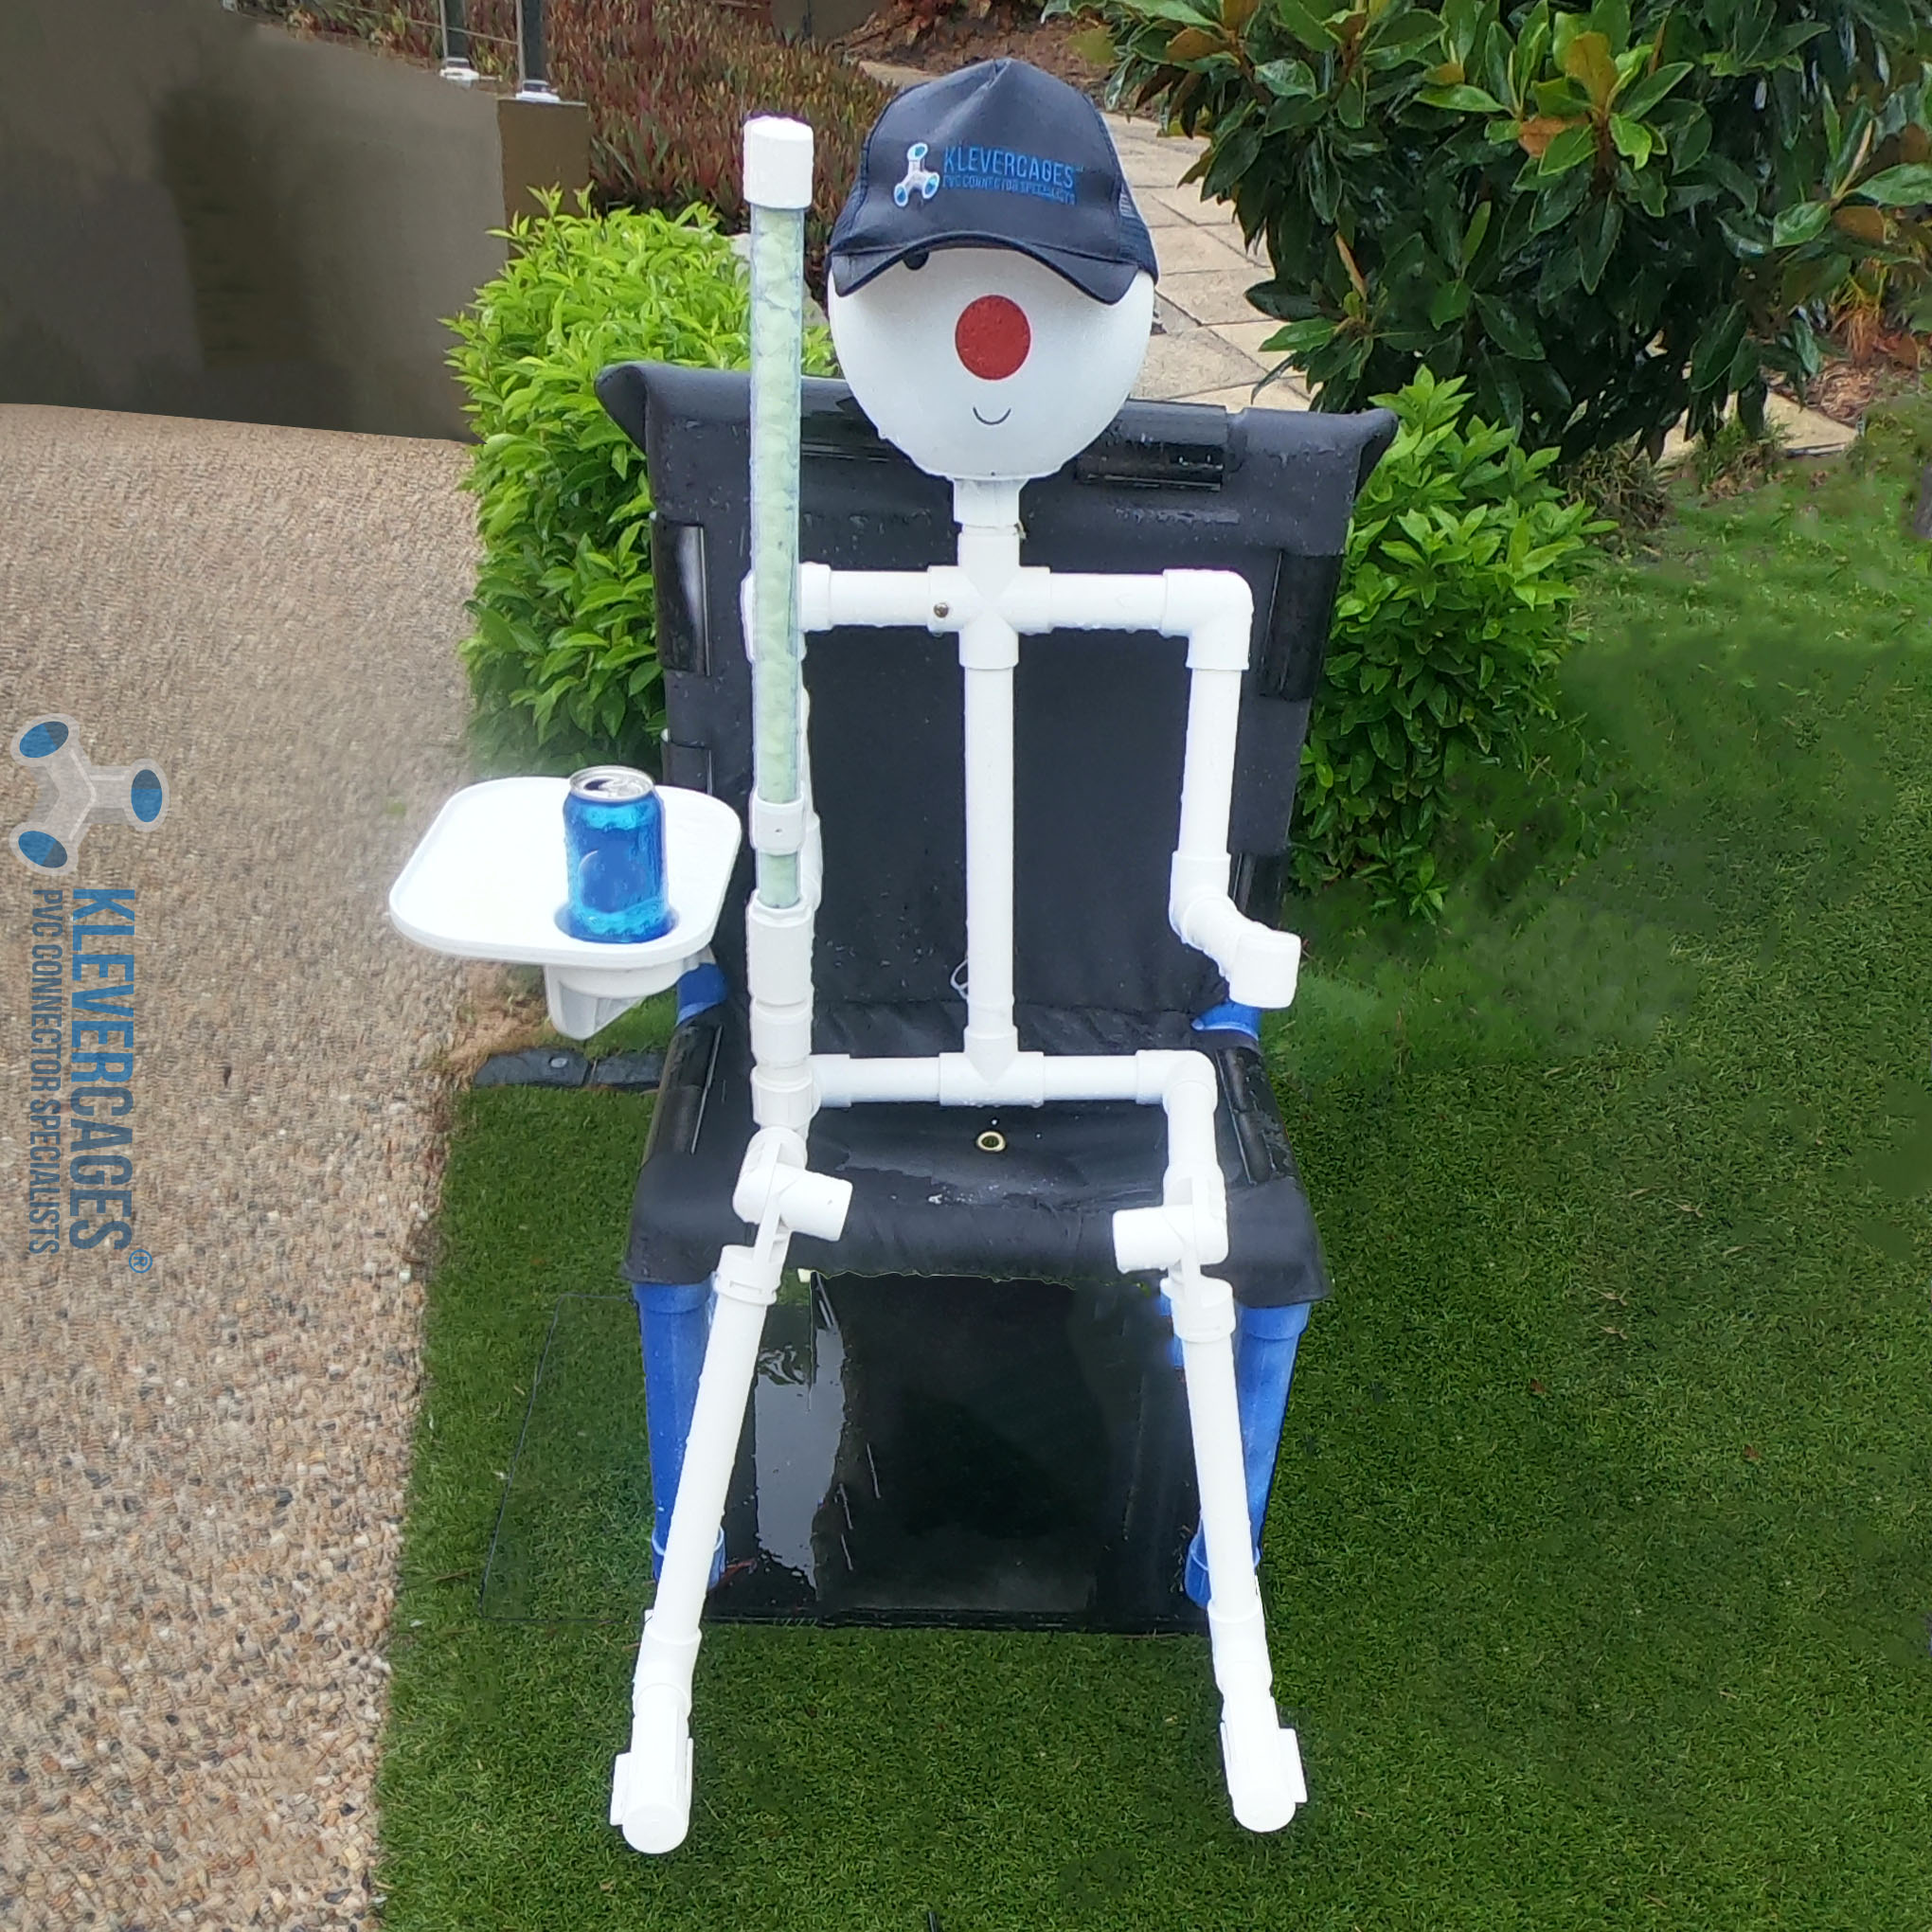 Connector Cam PVC pipe person sitting on a chair with a drink and a hat. Built from PVC fittings and PVC pipe from Klever Cages